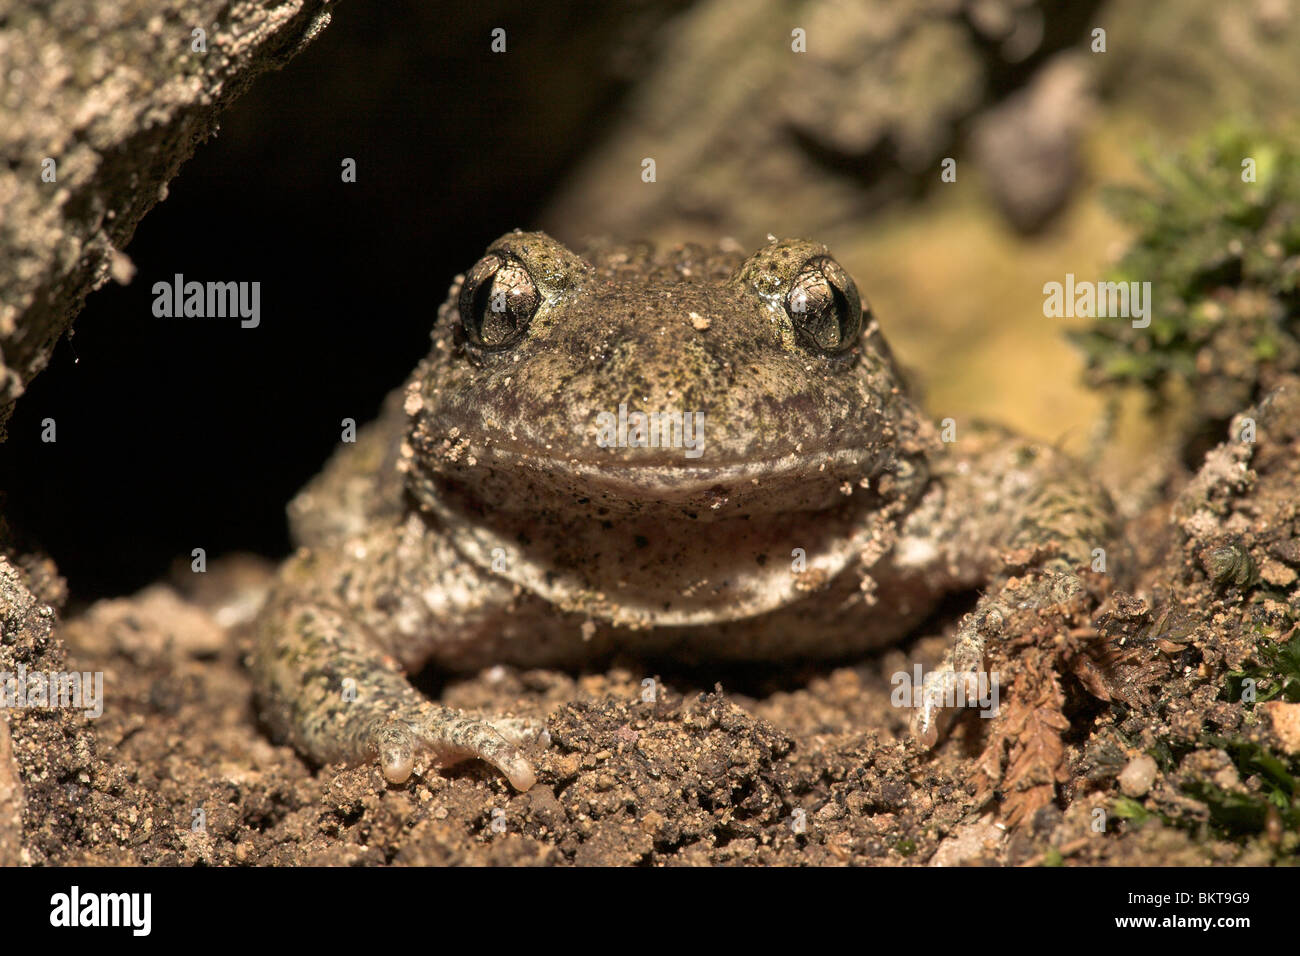 Frontal portrait of a common midwife toad in a hole under a tree - Stock Image